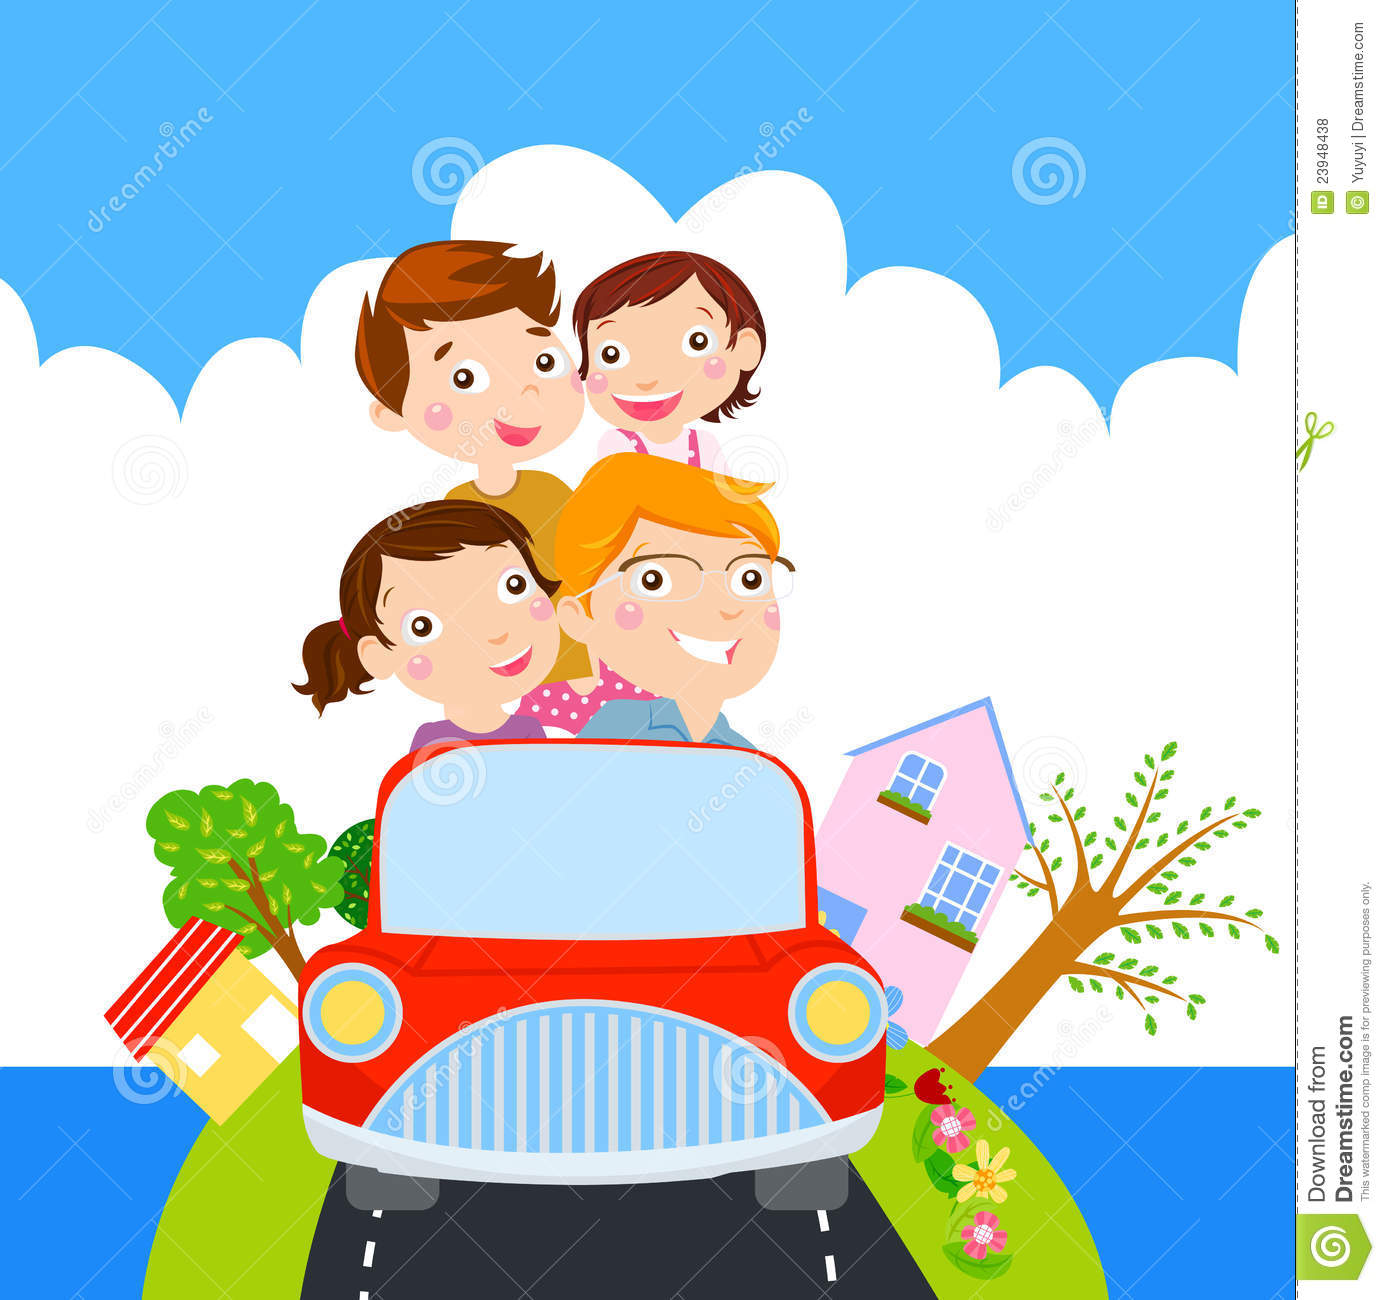 2717 Vacation free clipart.